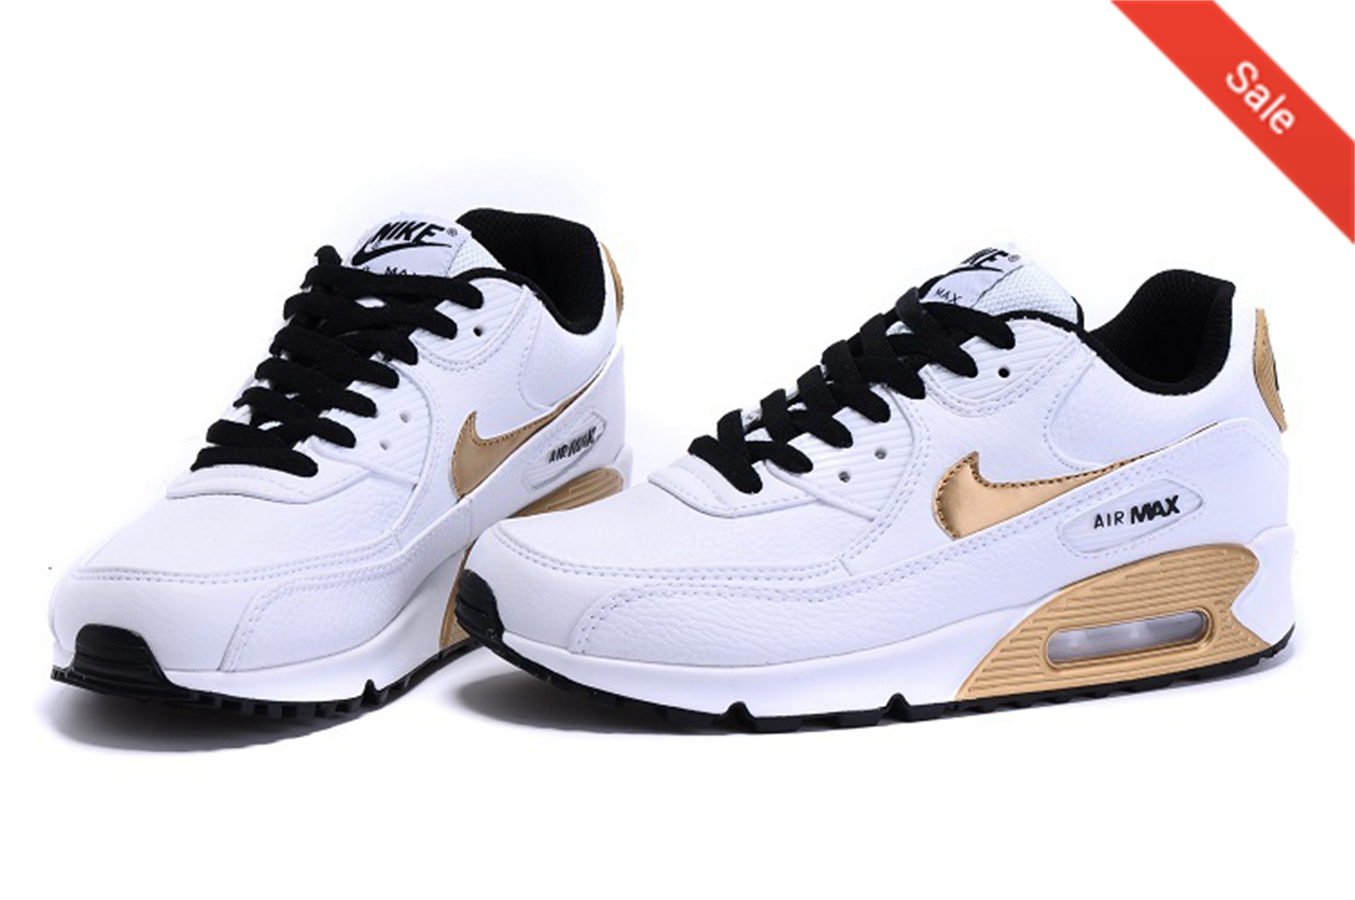 Soldes > promo nike air max 90 homme > en stock